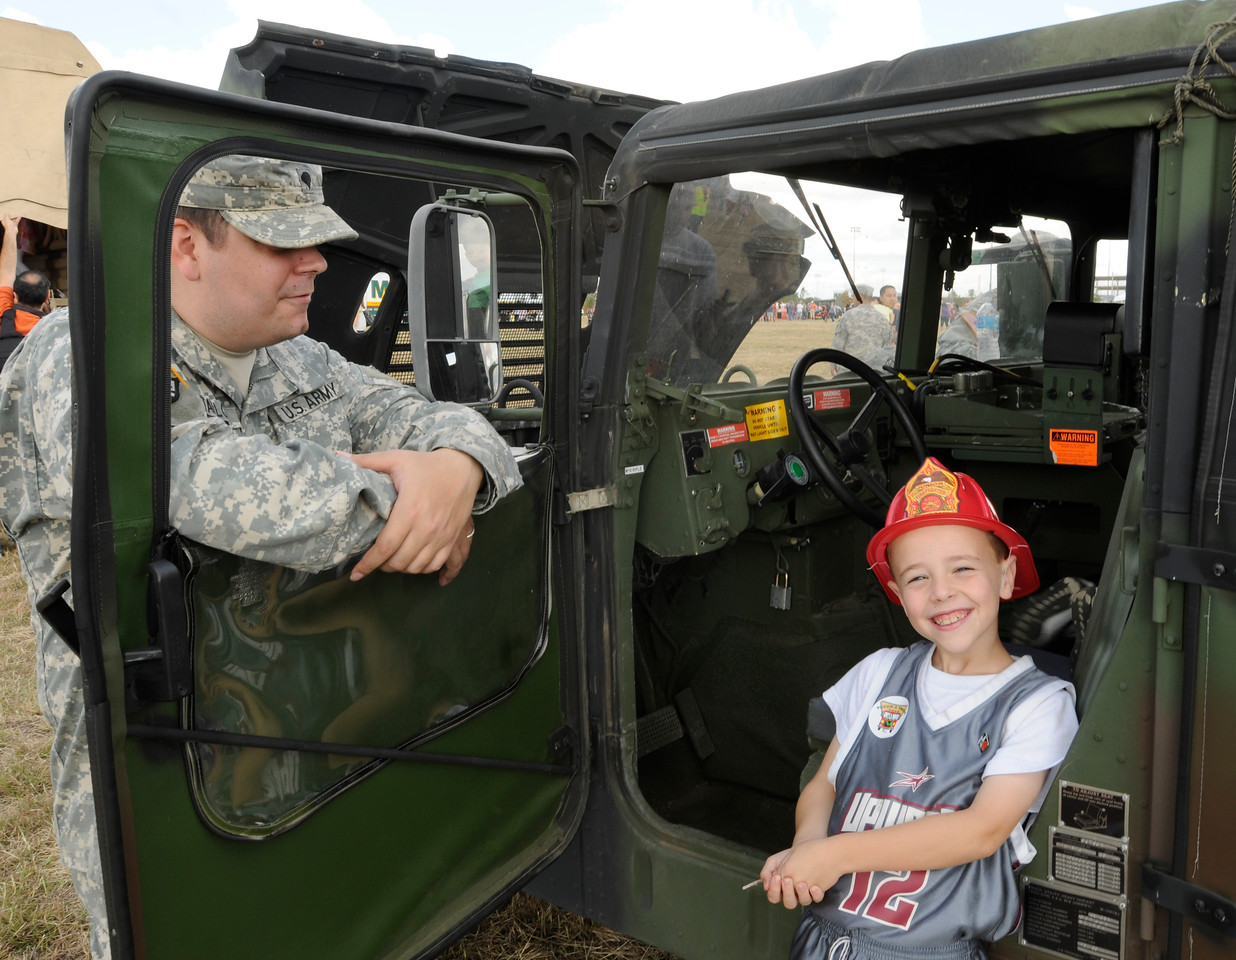 In this image released by Joint Task Force 71 (Maneuver Enhancement Brigade), Soldiers with the Minuteman Brigade participate in Round Rock's Touch a Truck event November 3, 2012, at the Old Settlers Park in Round Rock, Texas. The National Guard was on site for the event to show off and demonstrate Army capabilities and vehicles for the community. The occassion also provided the JTF-71 (MEB) an opportunity to reach out to its new neighbors as the Guard occupants of the new Round Rock Armed Forces Reserve Component Center.